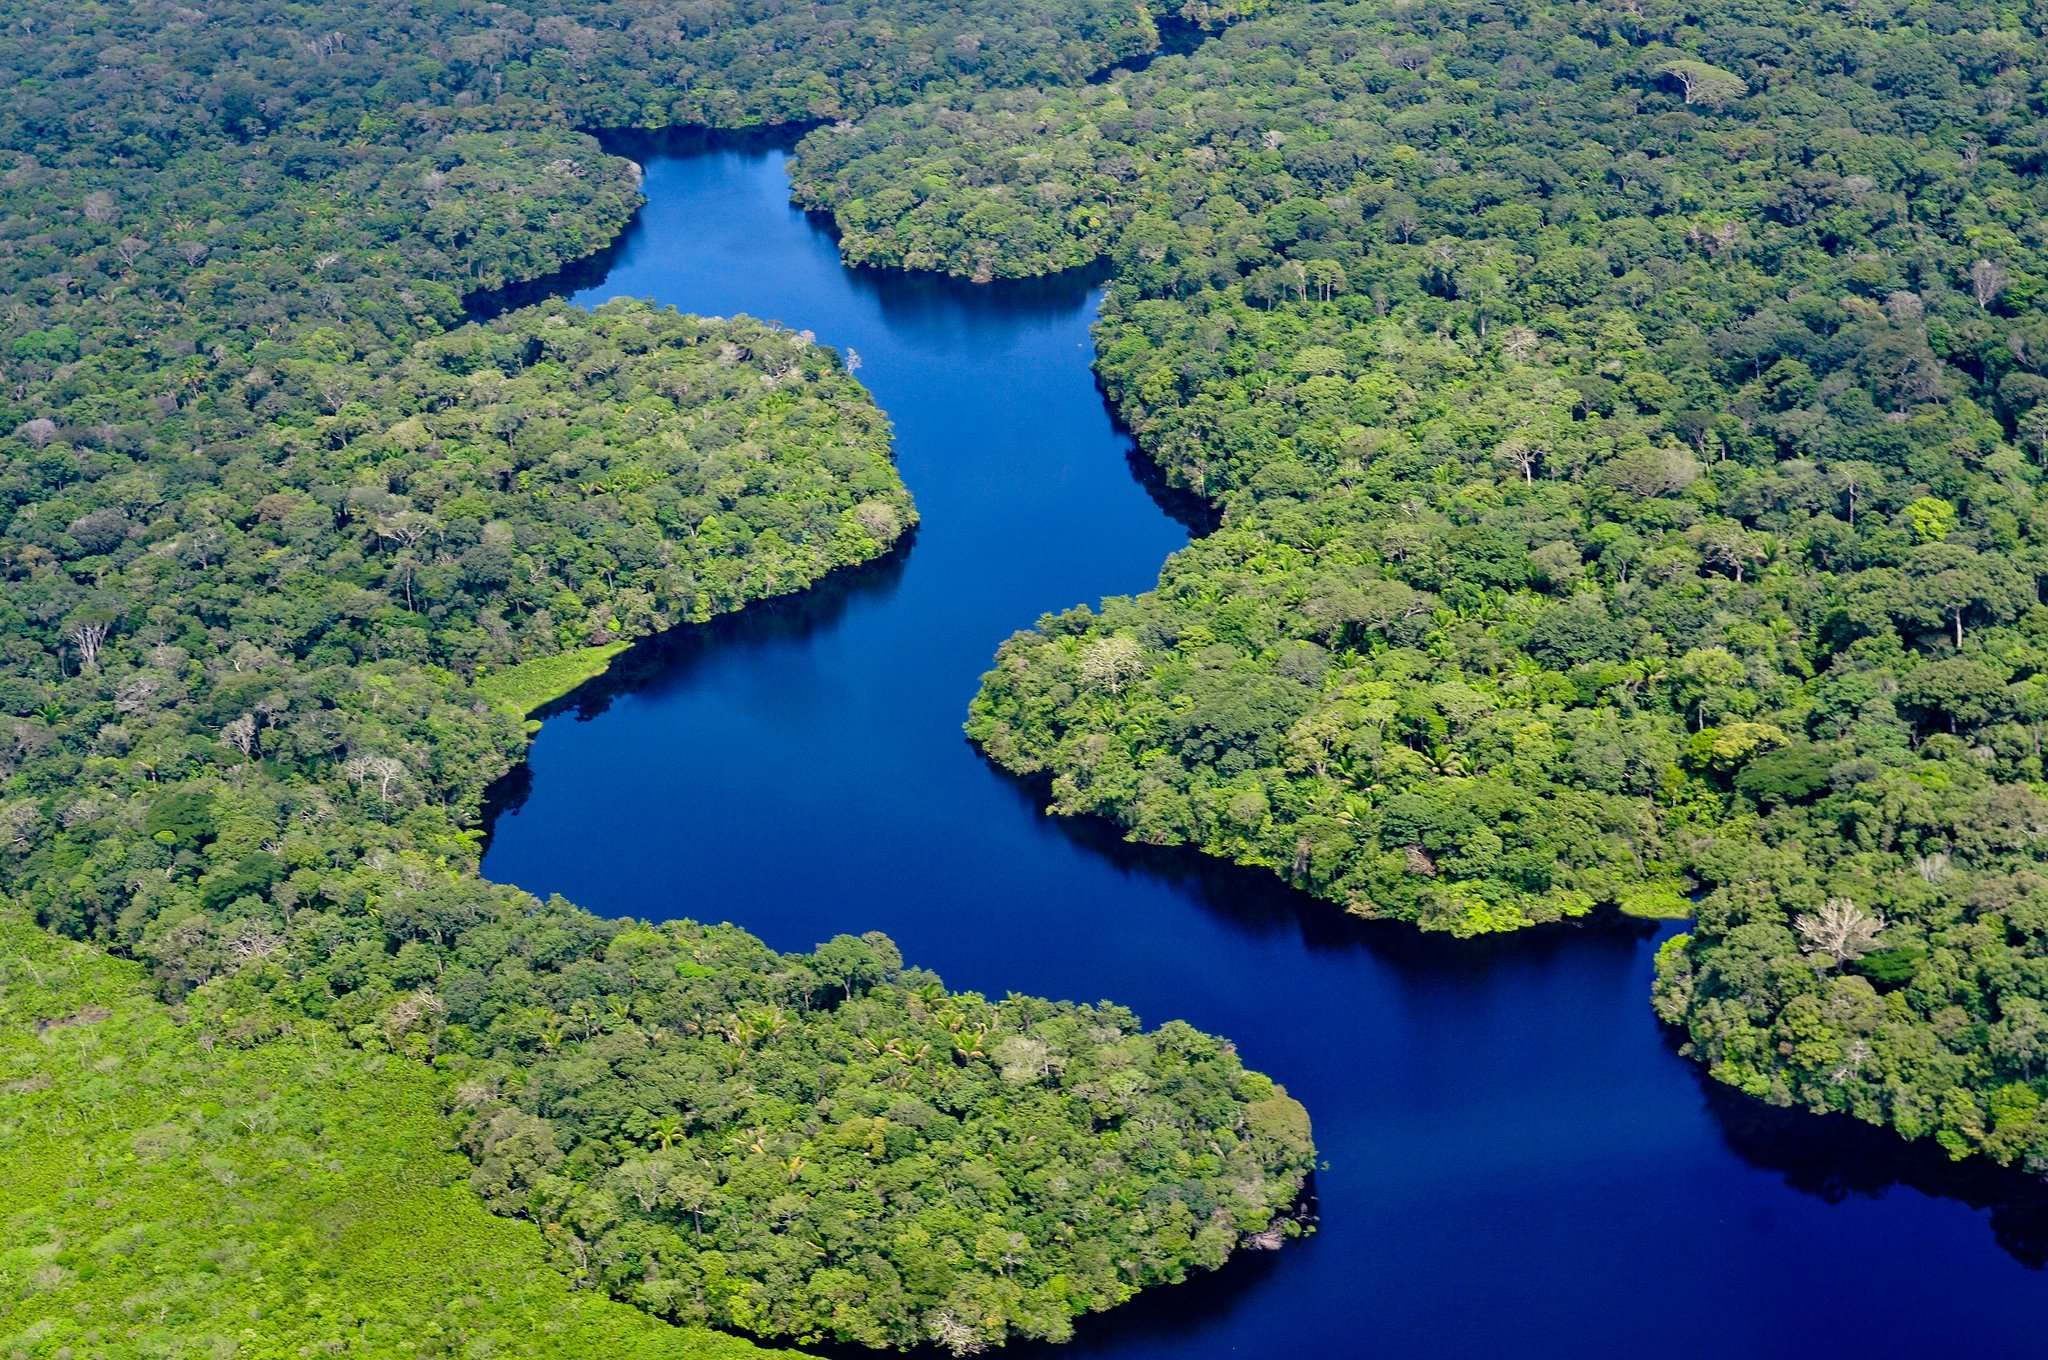 Brazil Replanting Rainforest Amazon